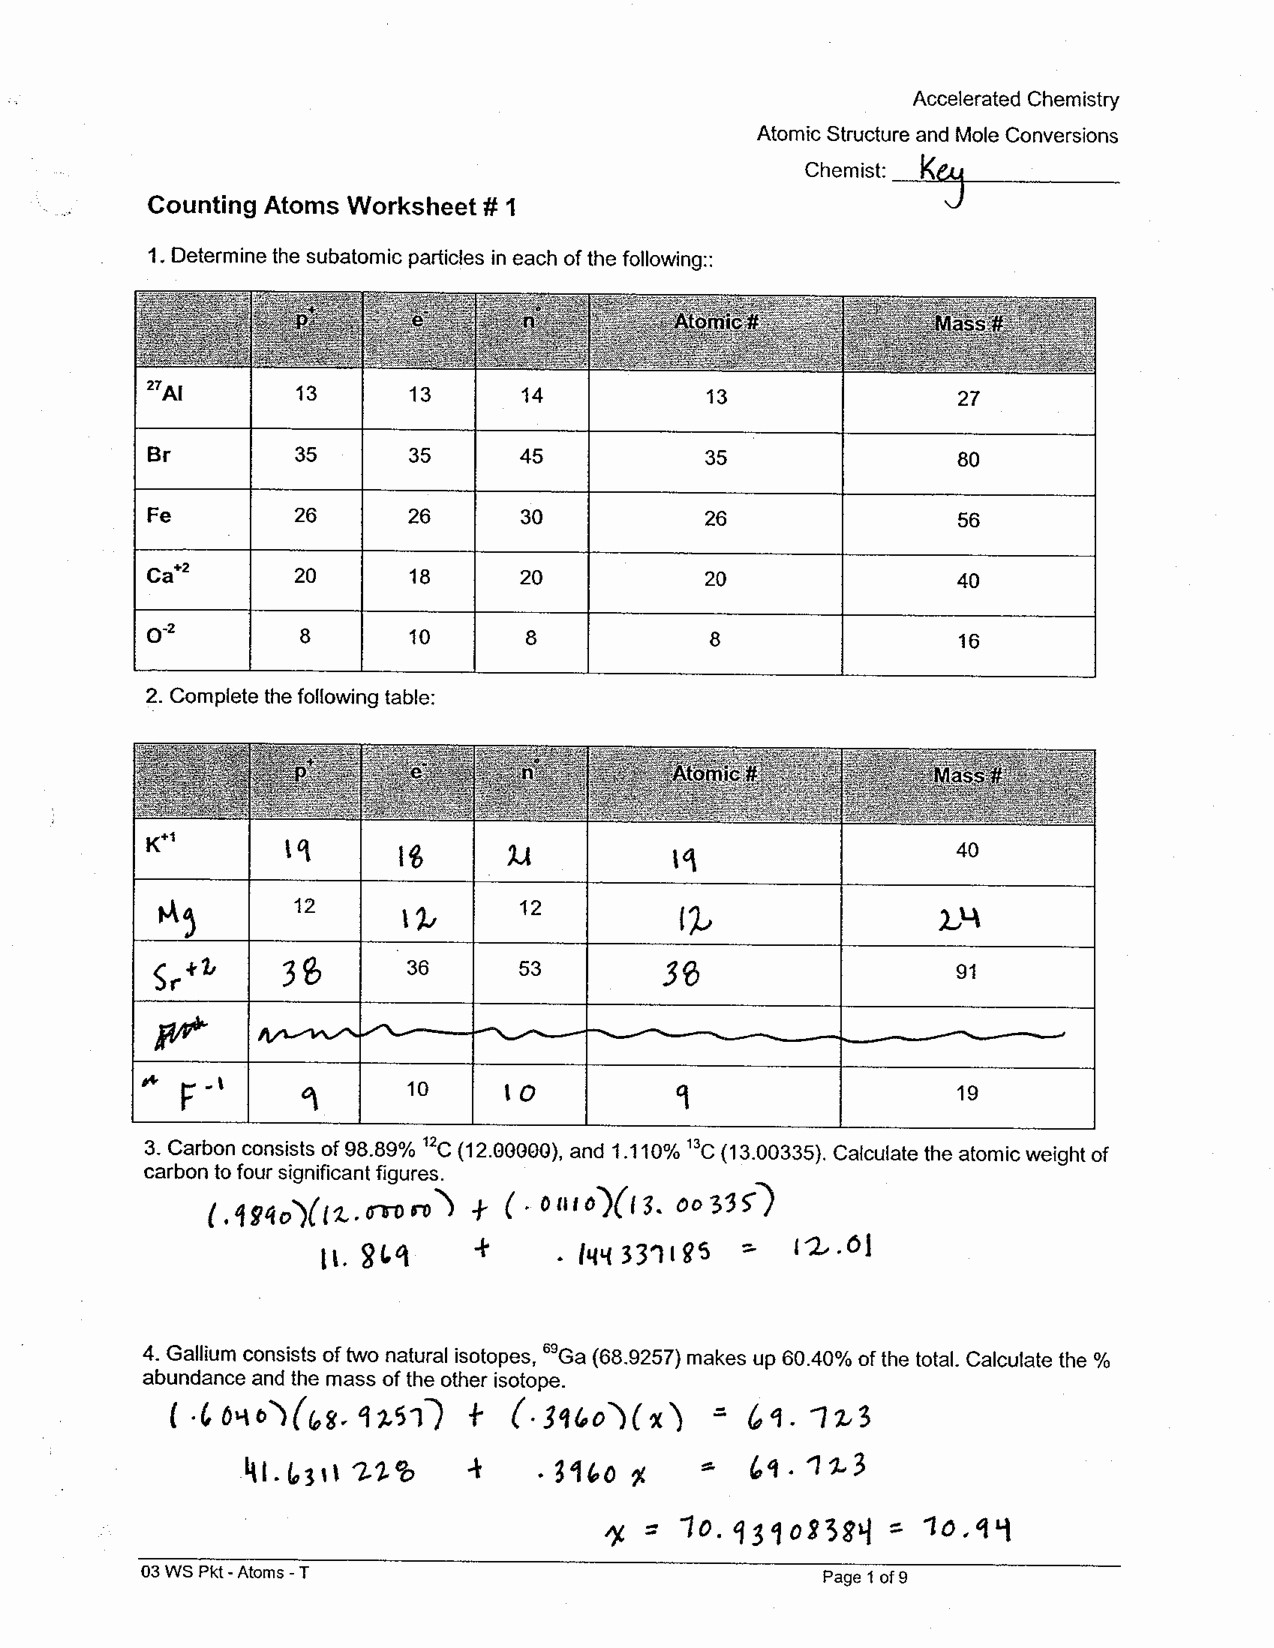 Atoms and Ions Worksheet atoms Molecules and Ions Worksheet Answers Search